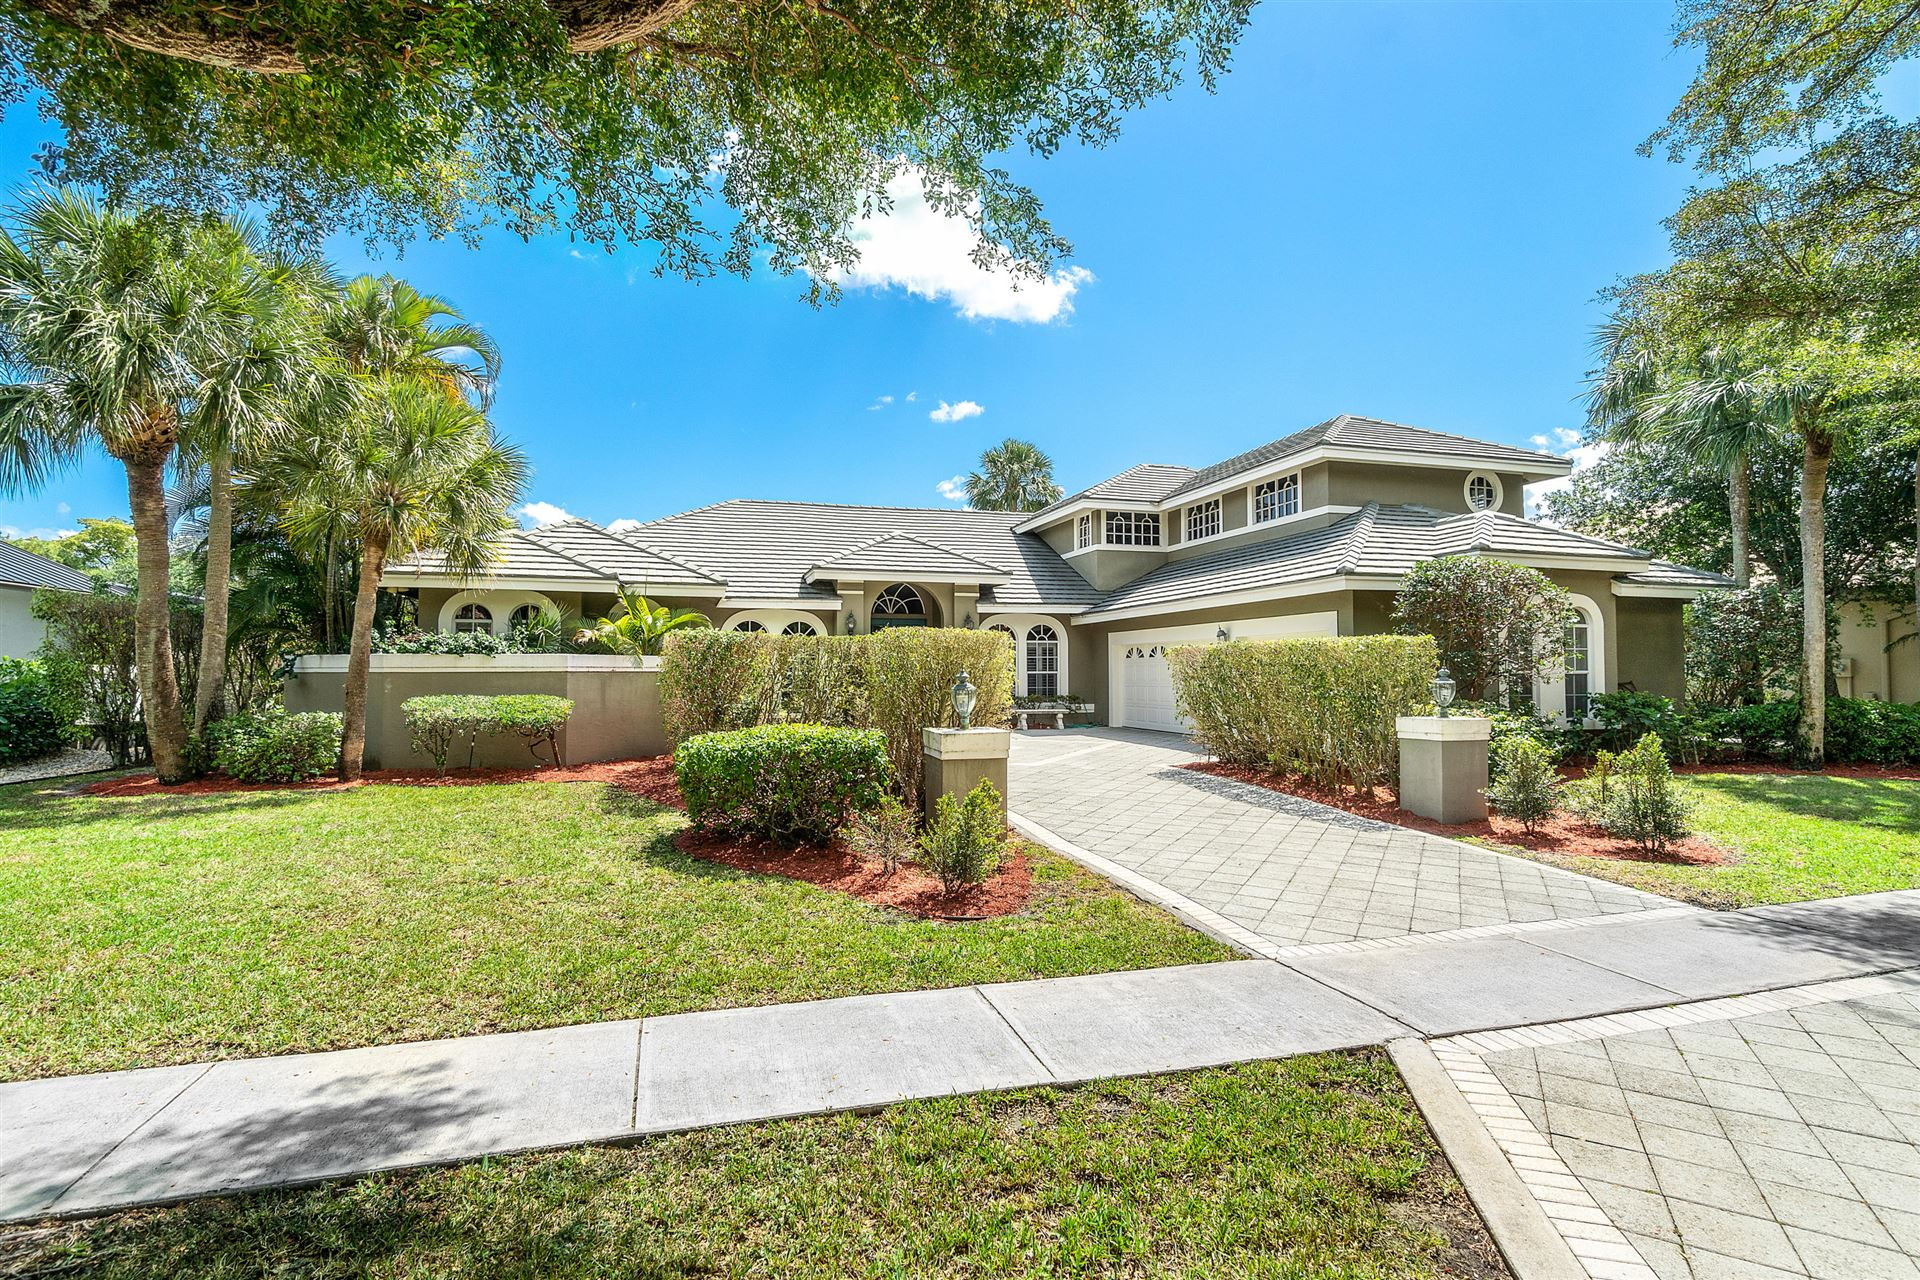 Photo of 1100 SW 21st Avenue, Boca Raton, FL 33486 (MLS # RX-10706107)